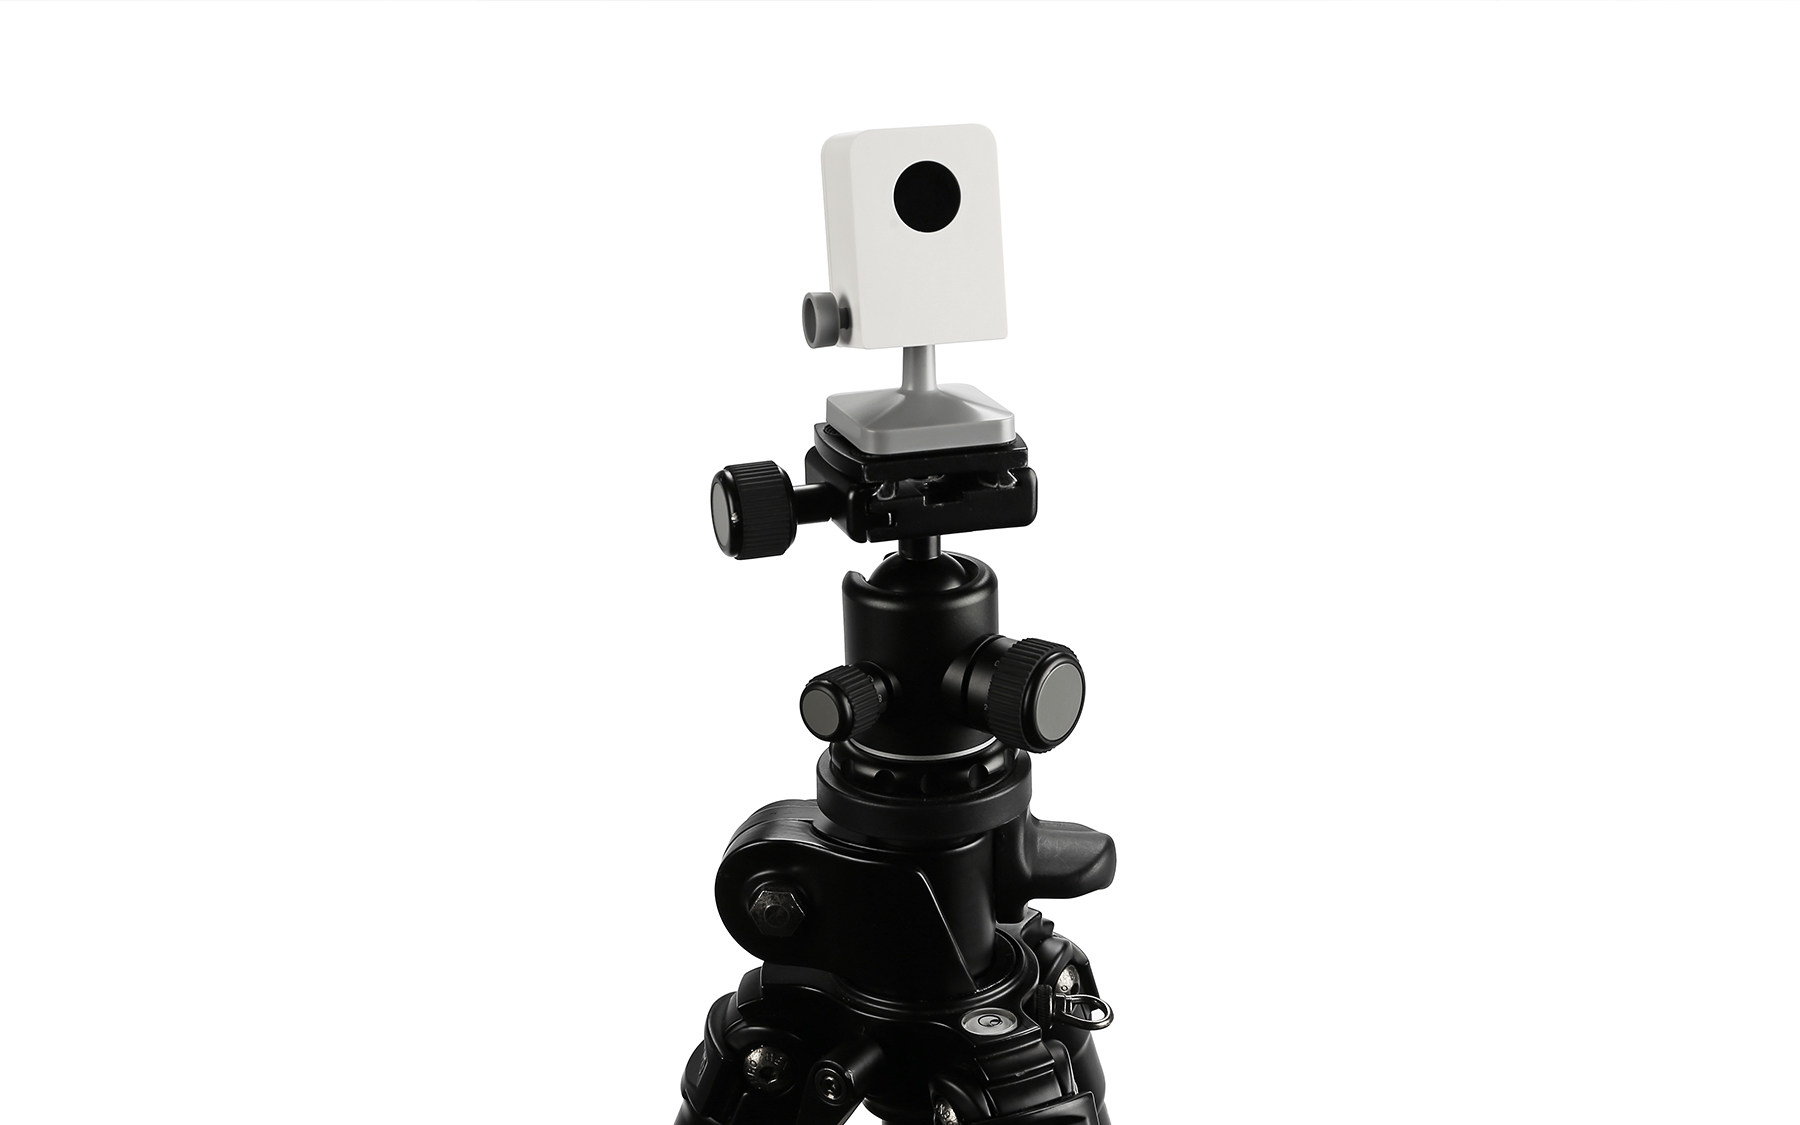 Standard tripod mount thread can be used with the Sensor Cam